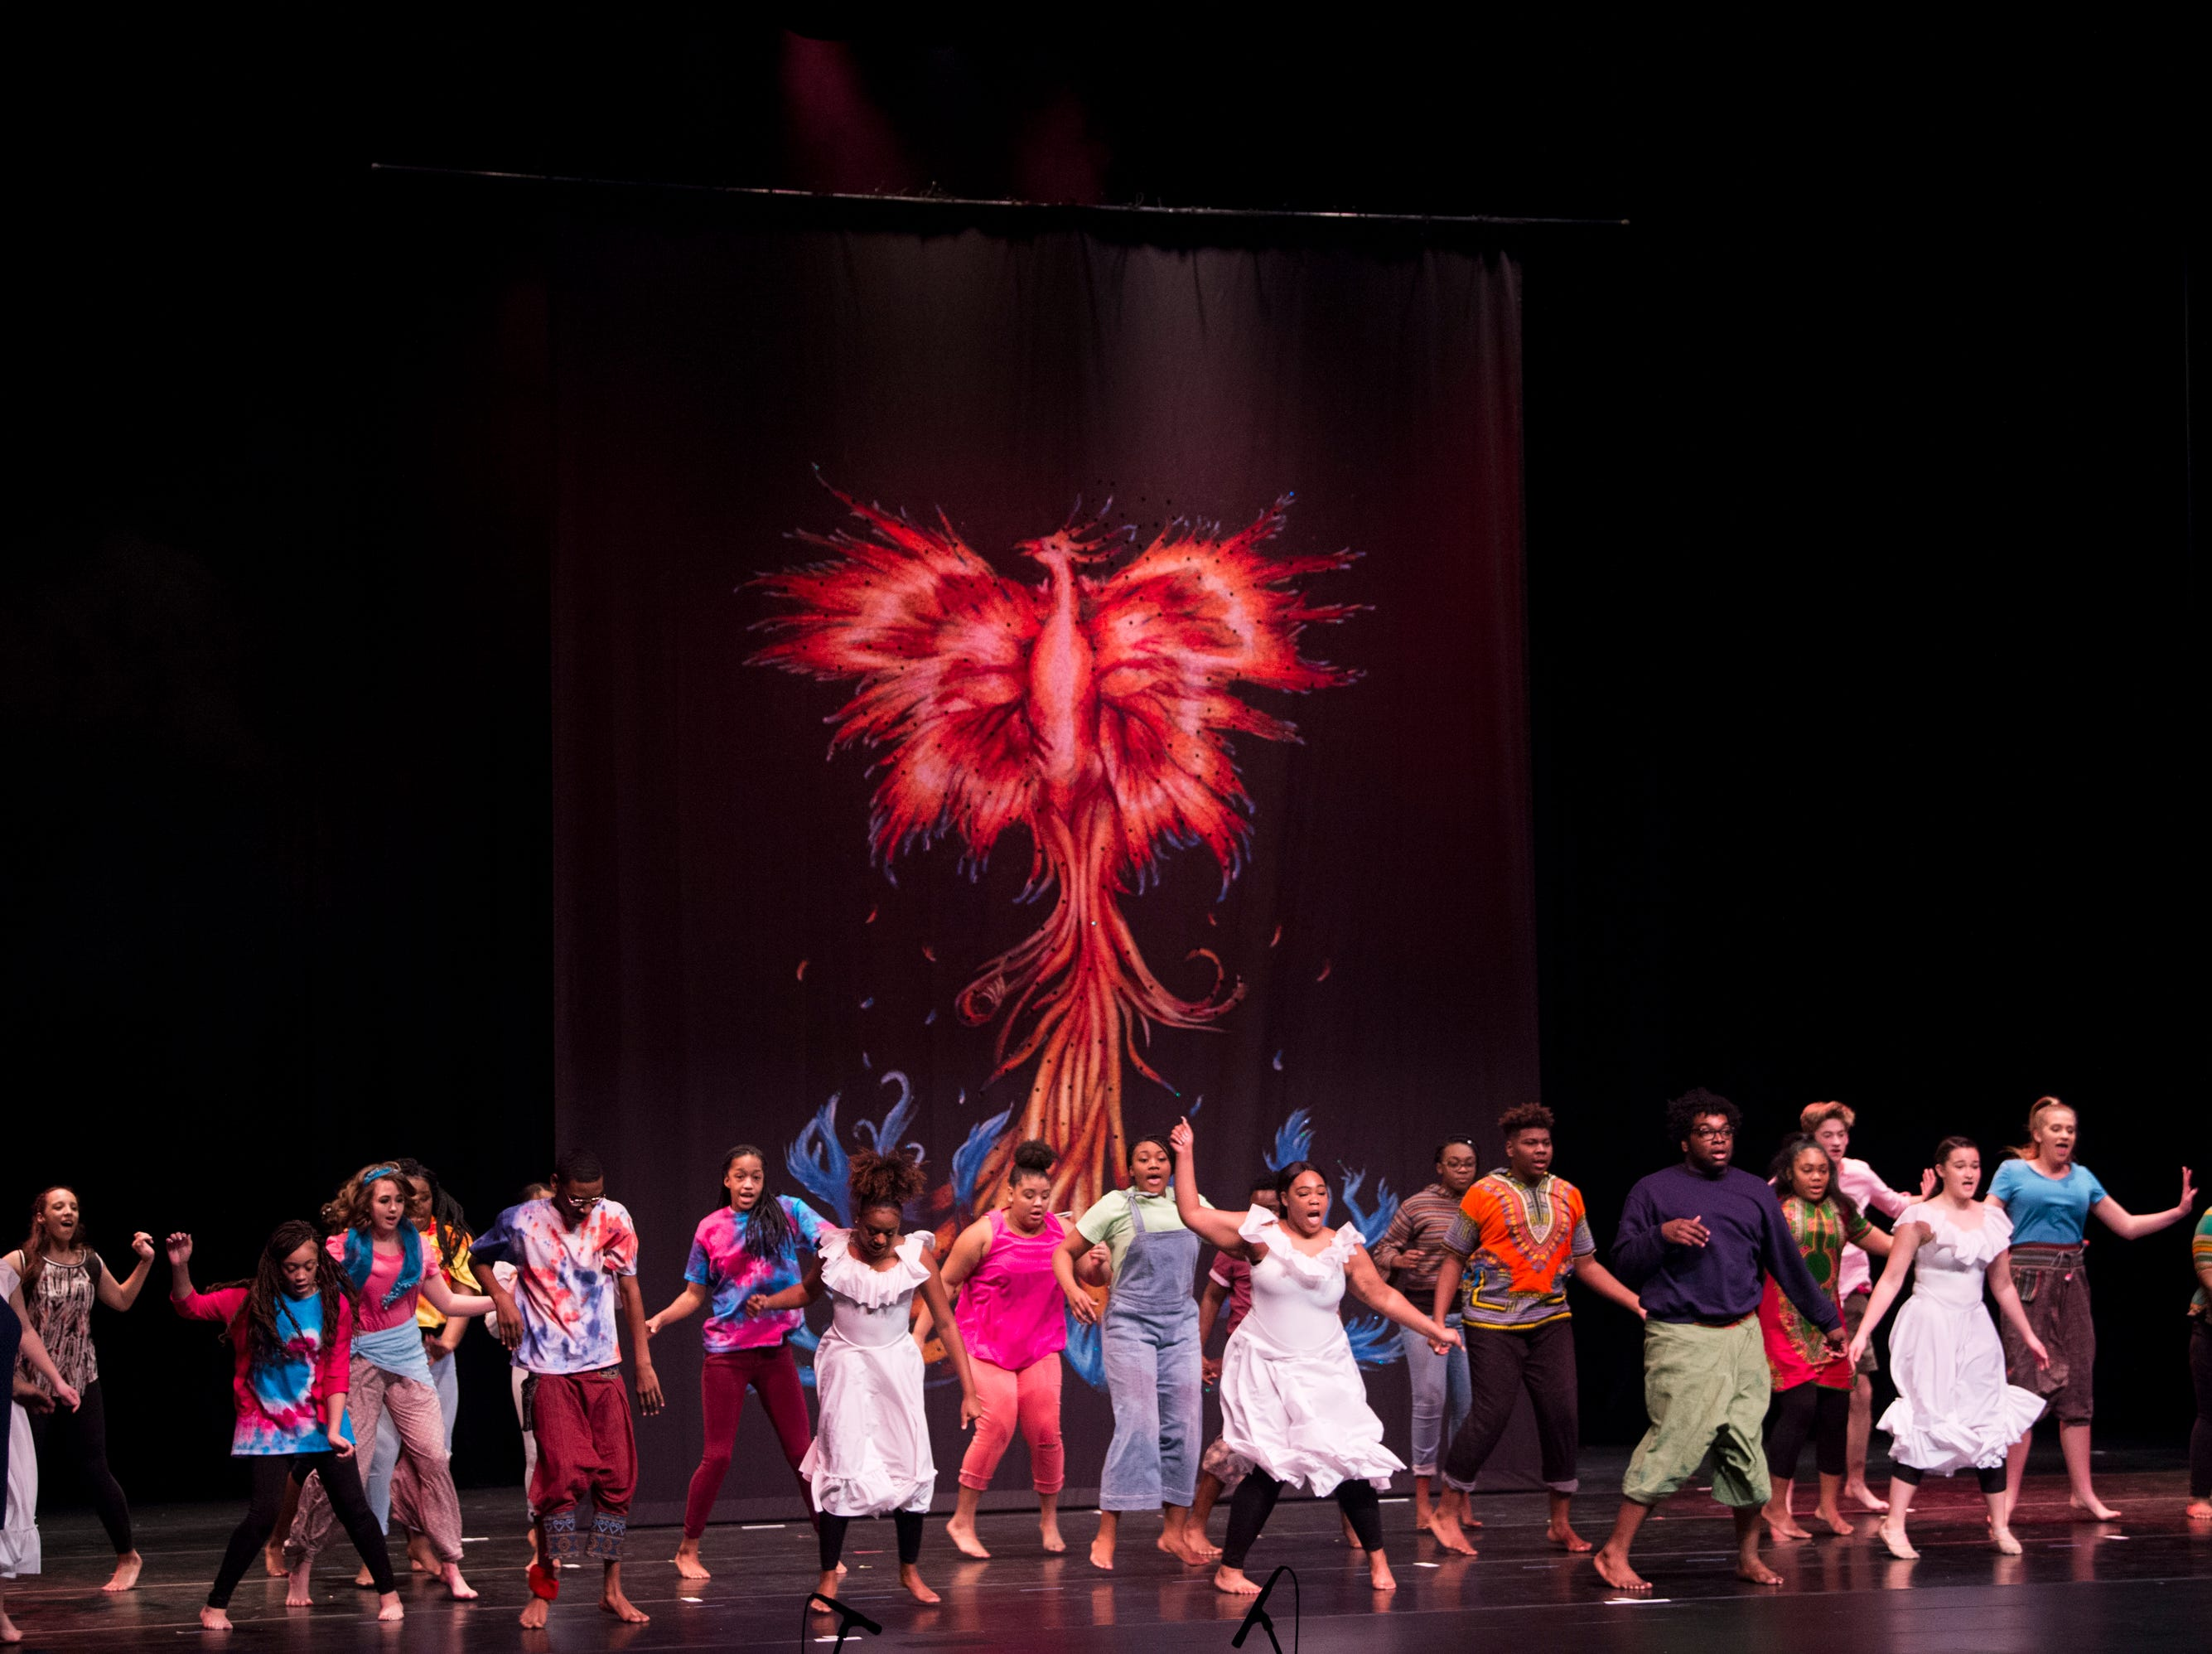 Students sing and dance during the BTW Showcase: Rise at the Montgomery Performing Arts Center in Montgomery, Ala., on Friday, Jan. 11, 2019.